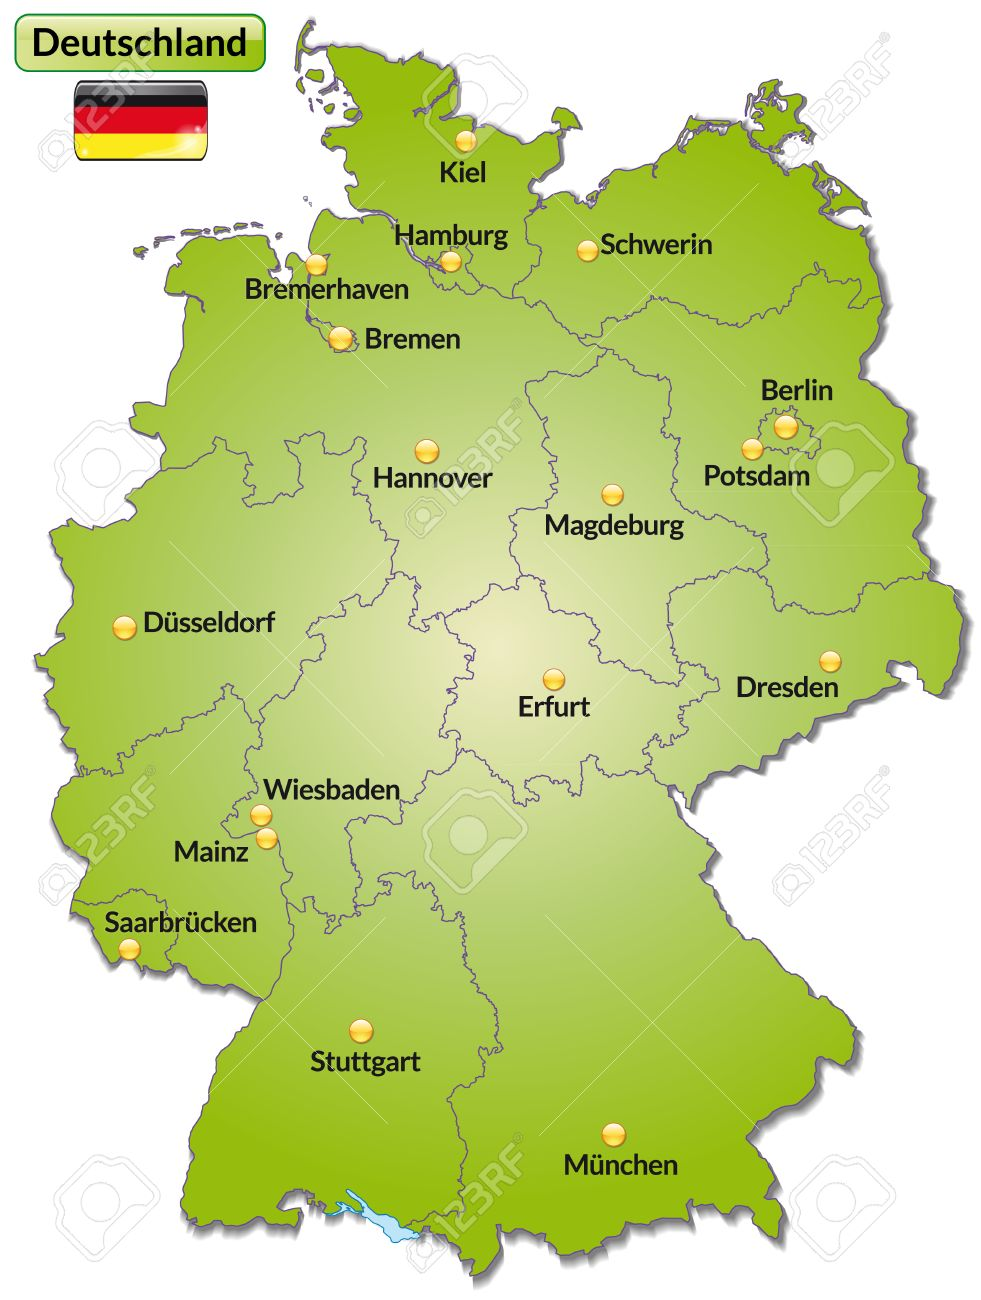 Map Of Germany With Main Cities In Green Royalty Free Cliparts